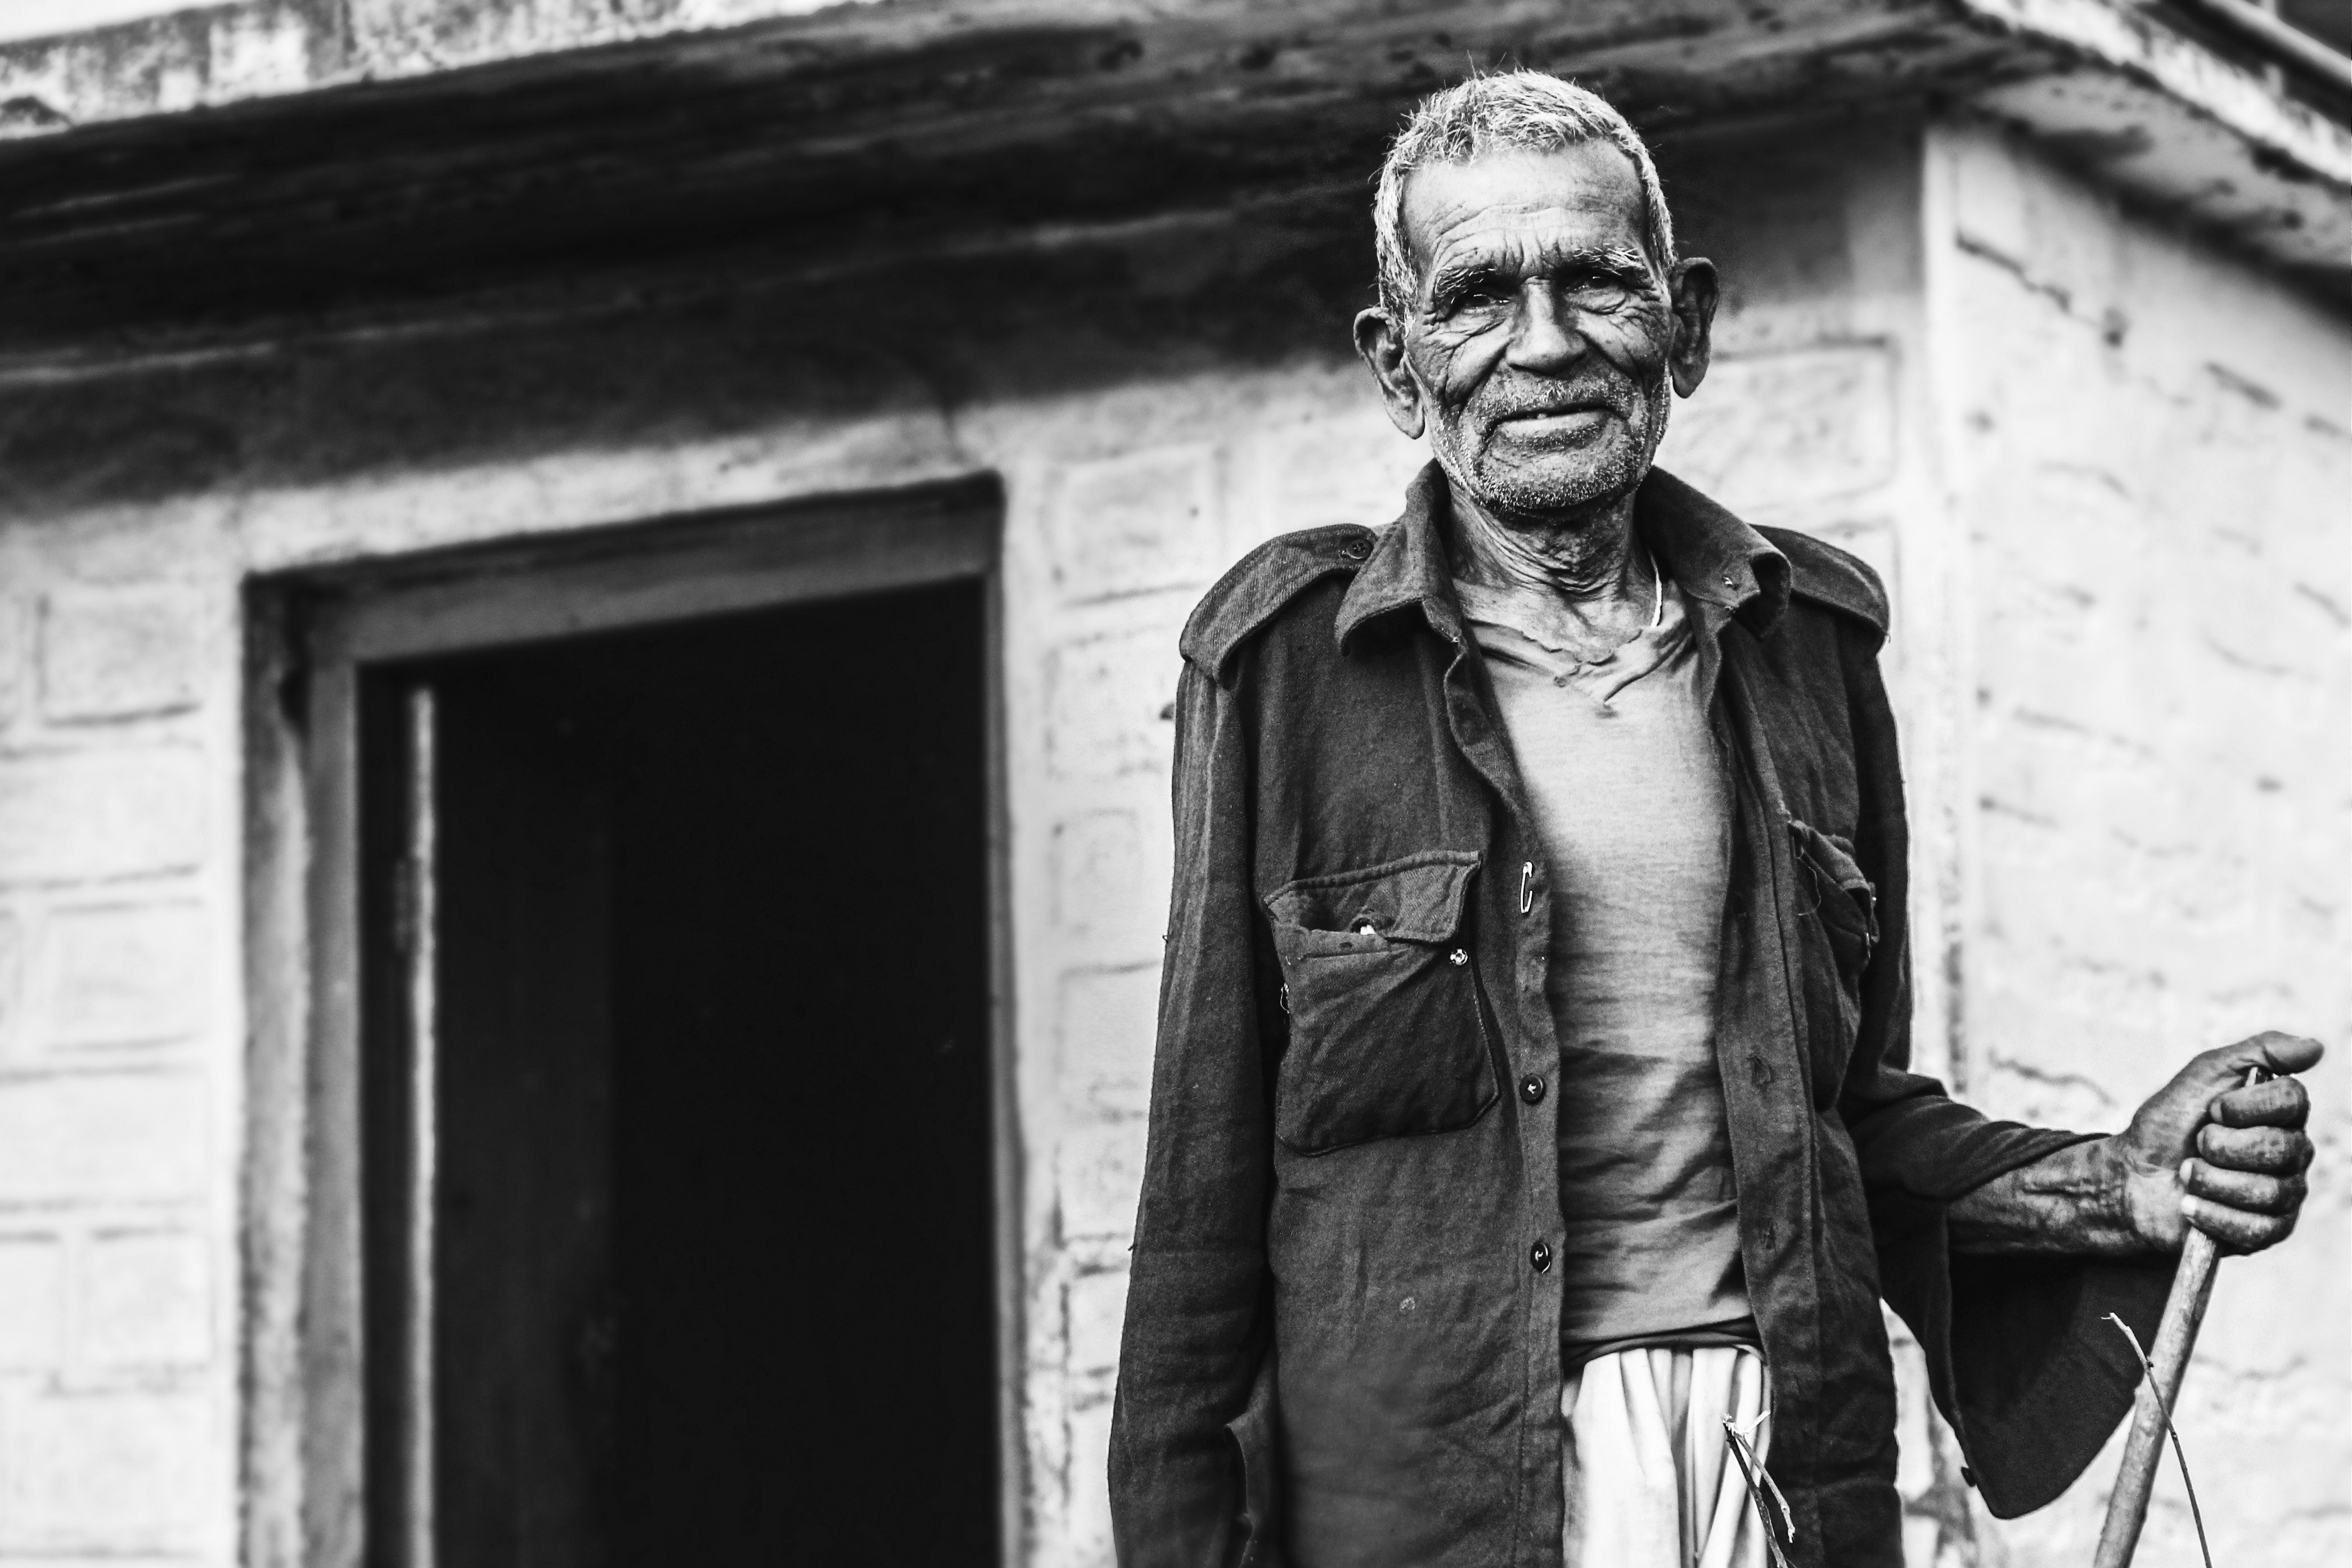 Man Wearing Button-up Shirt Standing Near Concrete House Greyscale Photo, Adult, Old, Wear, Village, HQ Photo